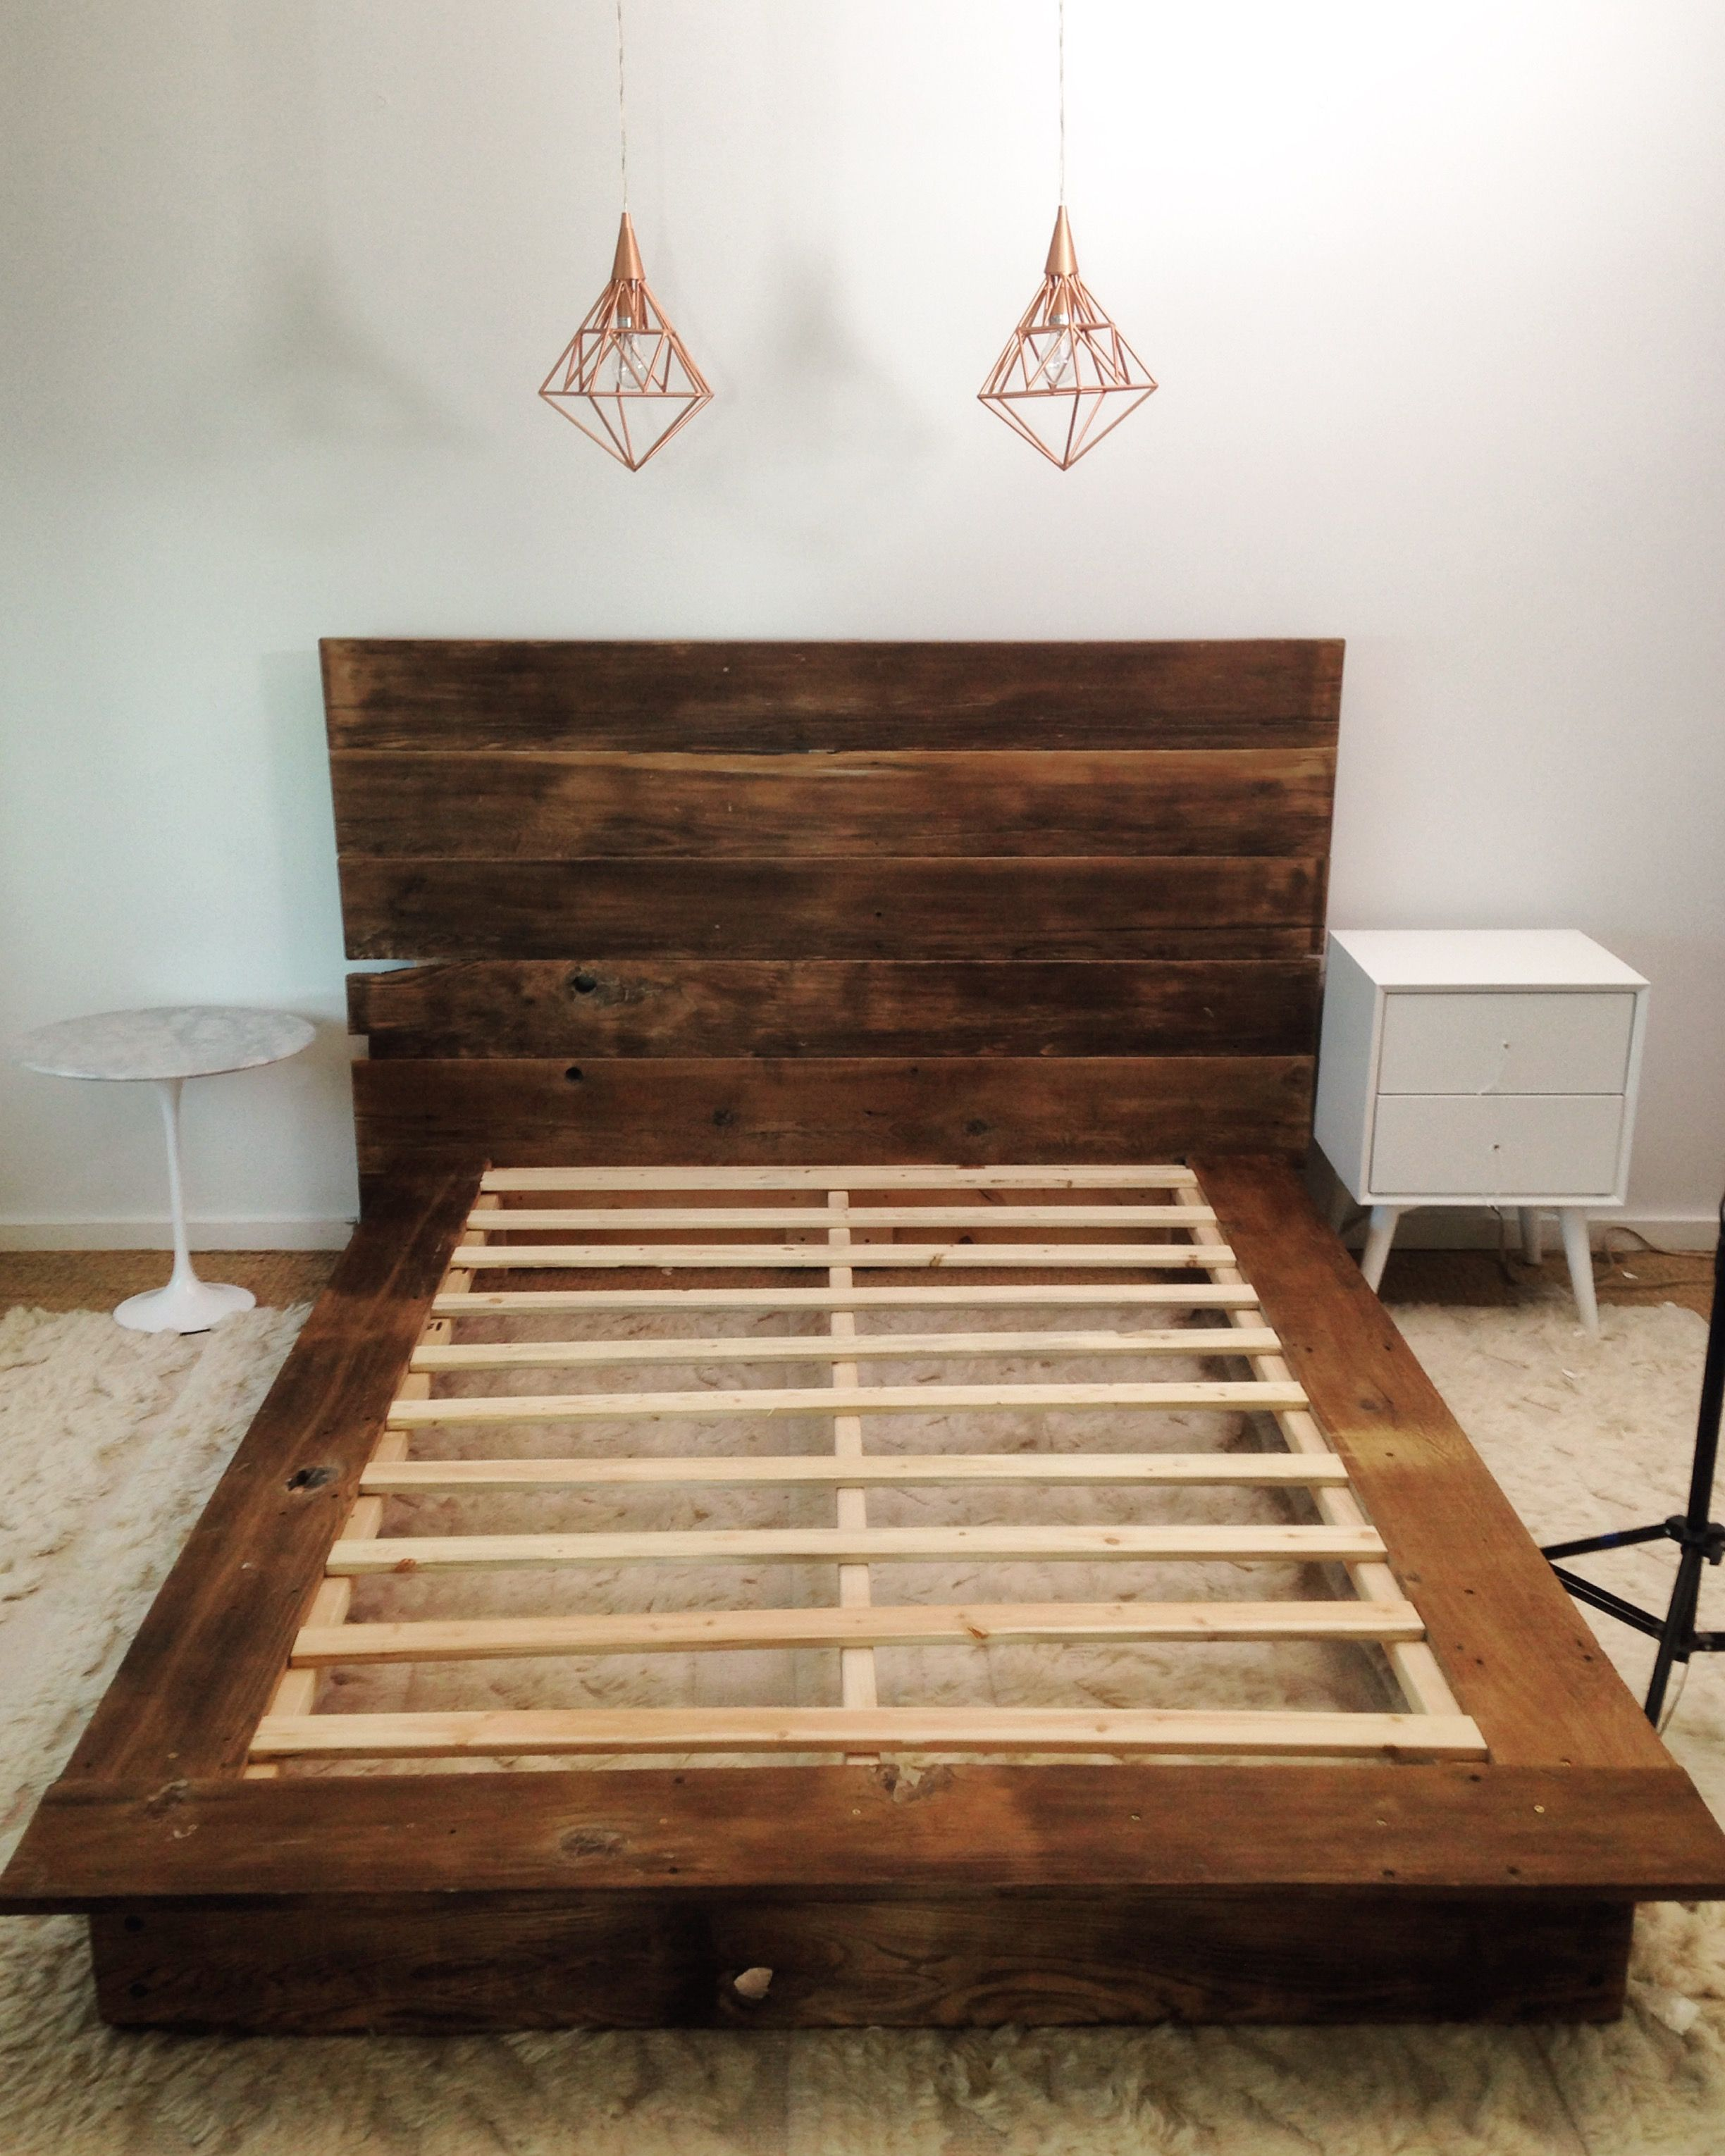 Diy Reclaimed Wood Platform Bed Diy Platform Bed Diy Bed Frame